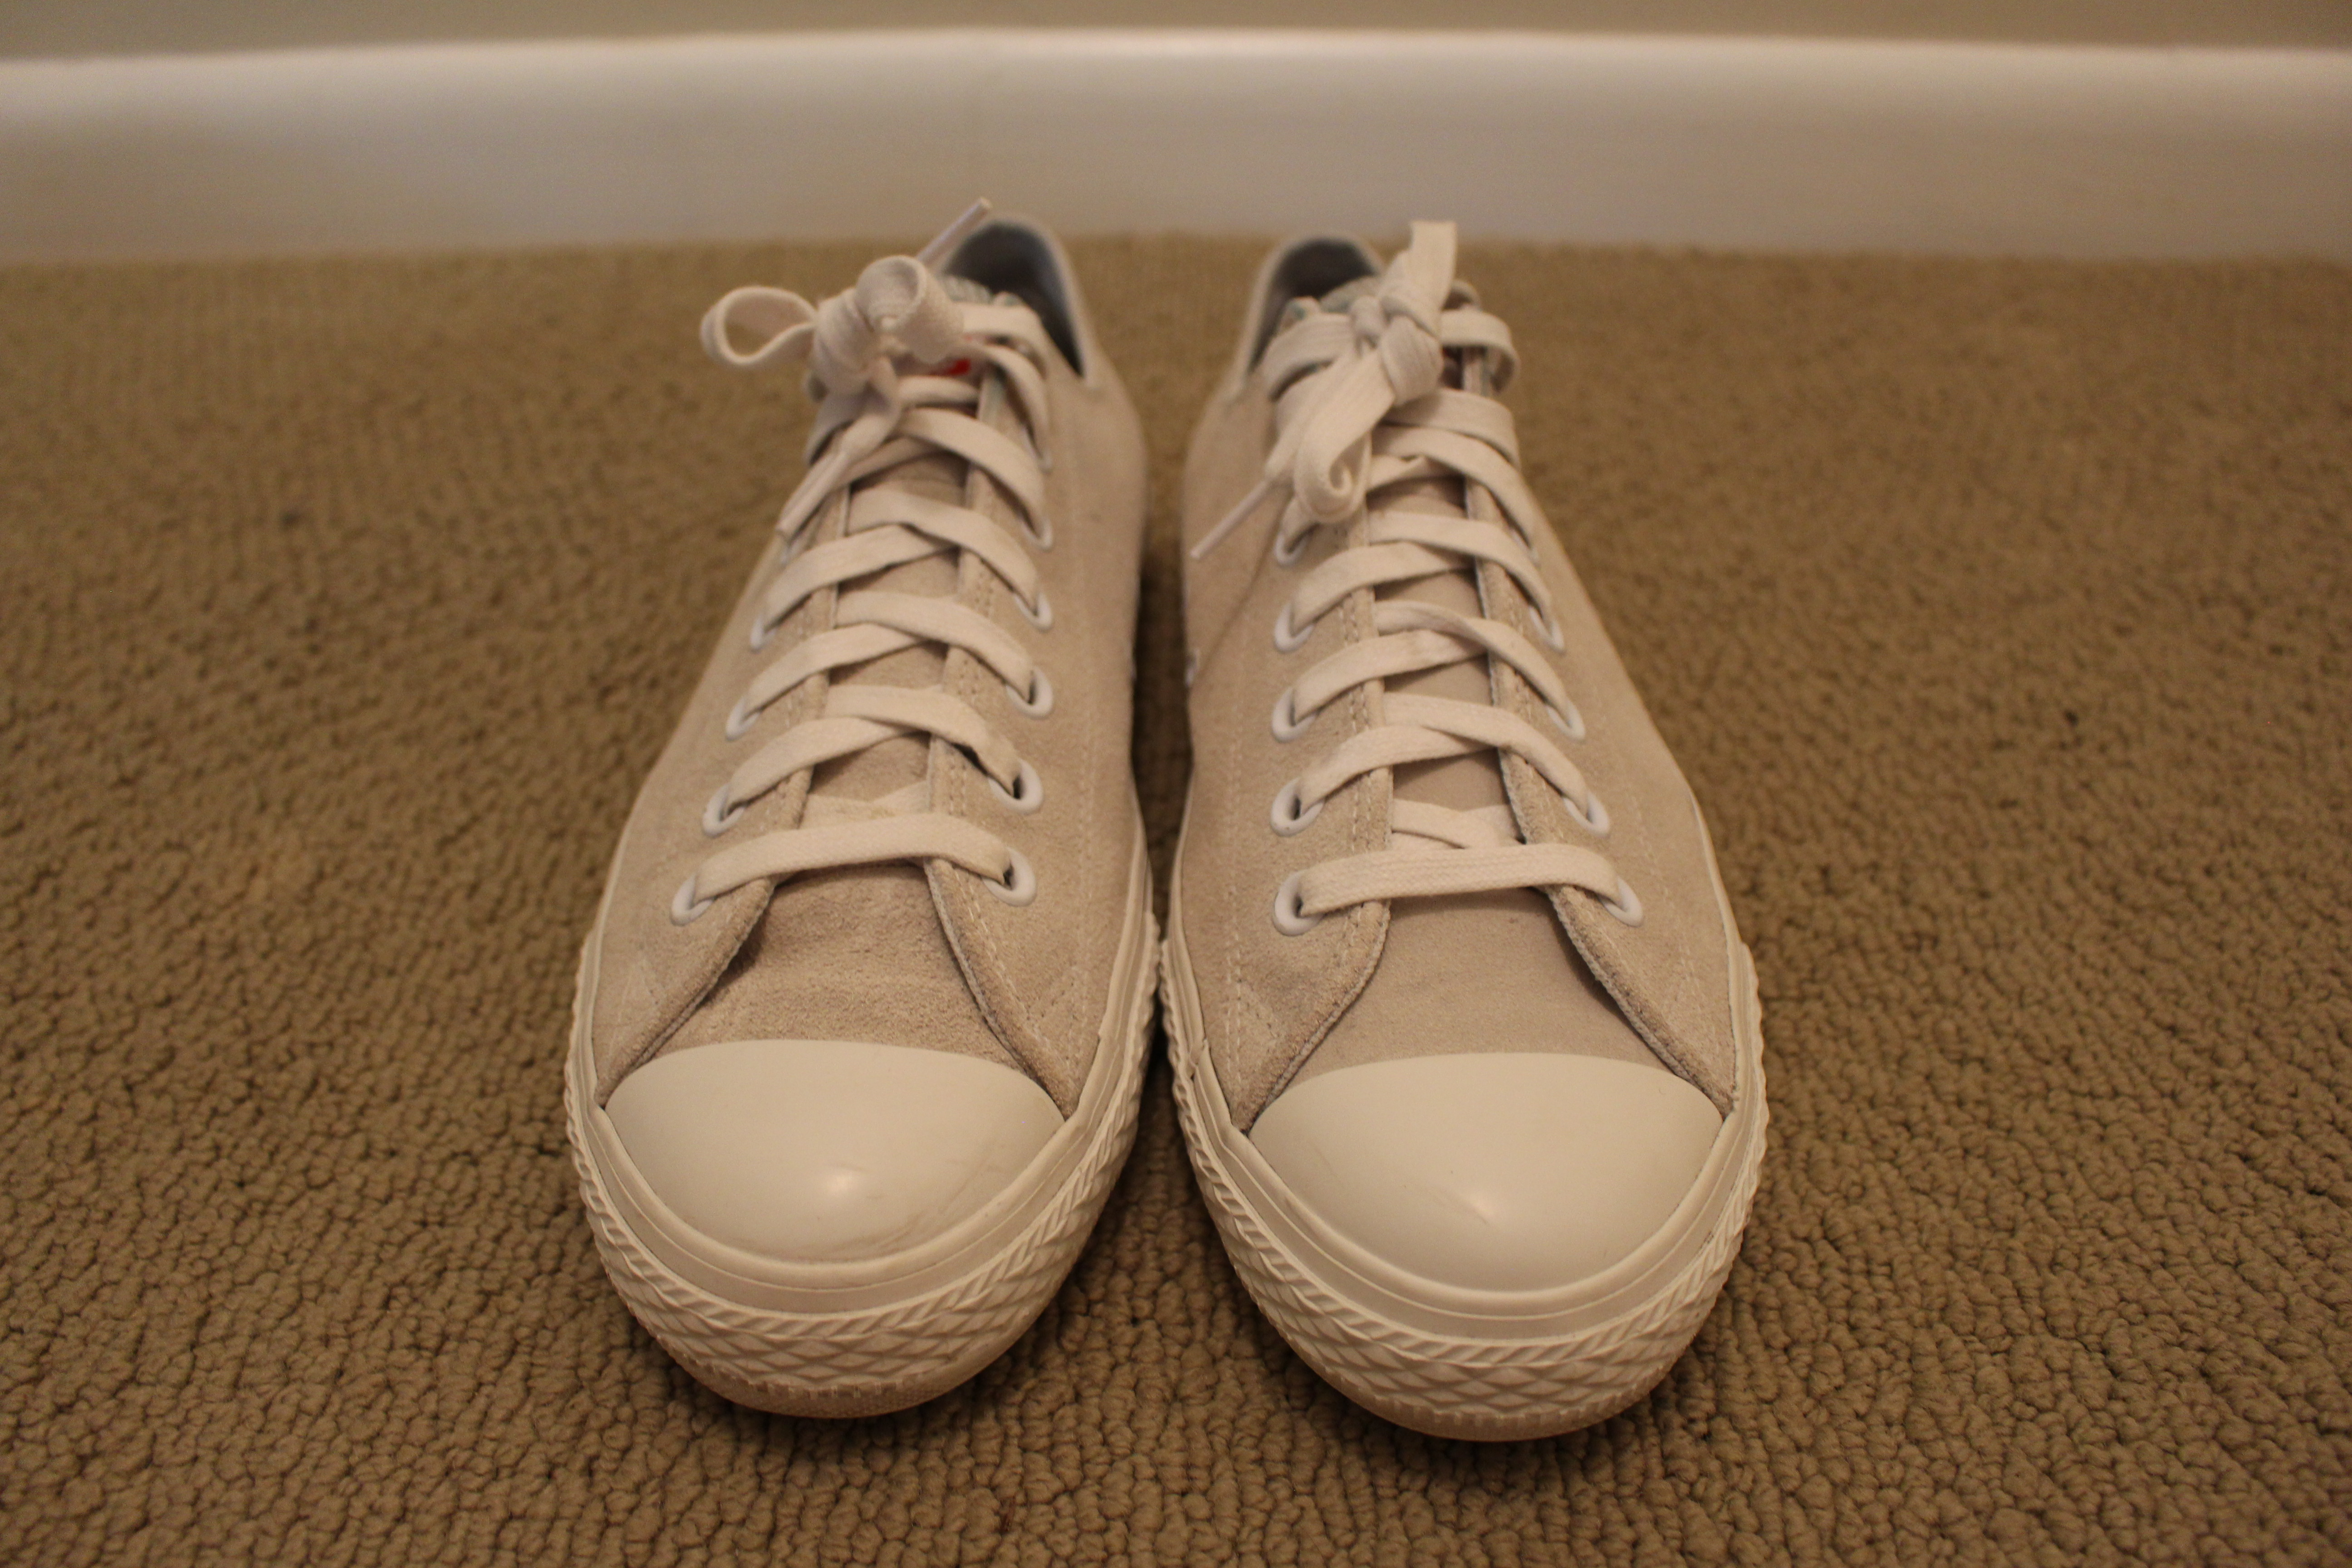 7403273e2f31f1 Converse Converse Chuck Taylor All Star Pro Polar Ox Size 9.5 - Low-Top  Sneakers for Sale - Grailed